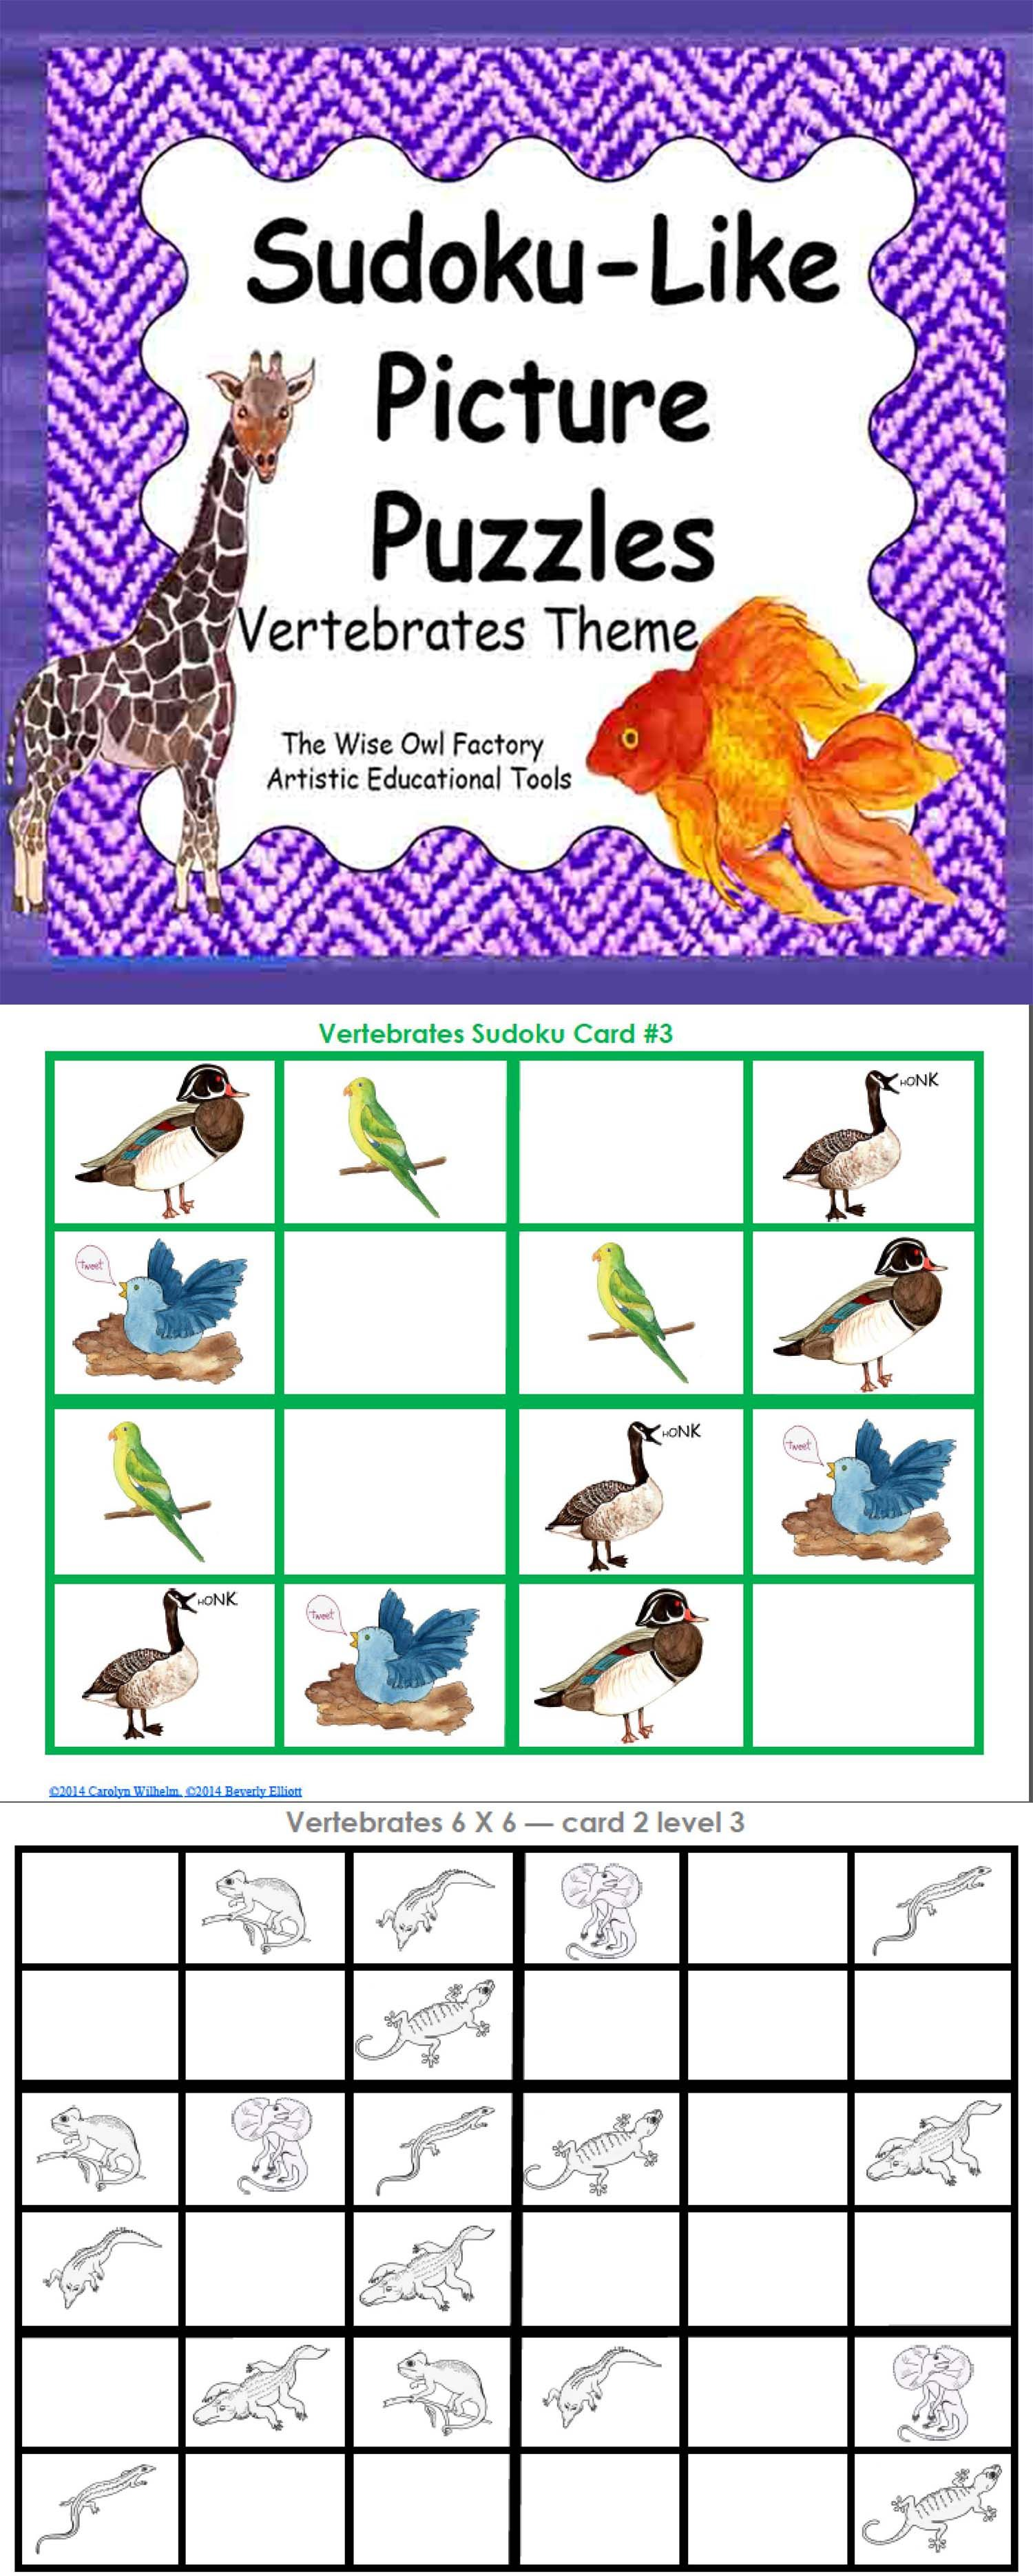 Sudoku-Like Picture Puzzles – Vertebrates Theme 4X4 6X6 8X8 and 9X9 ...